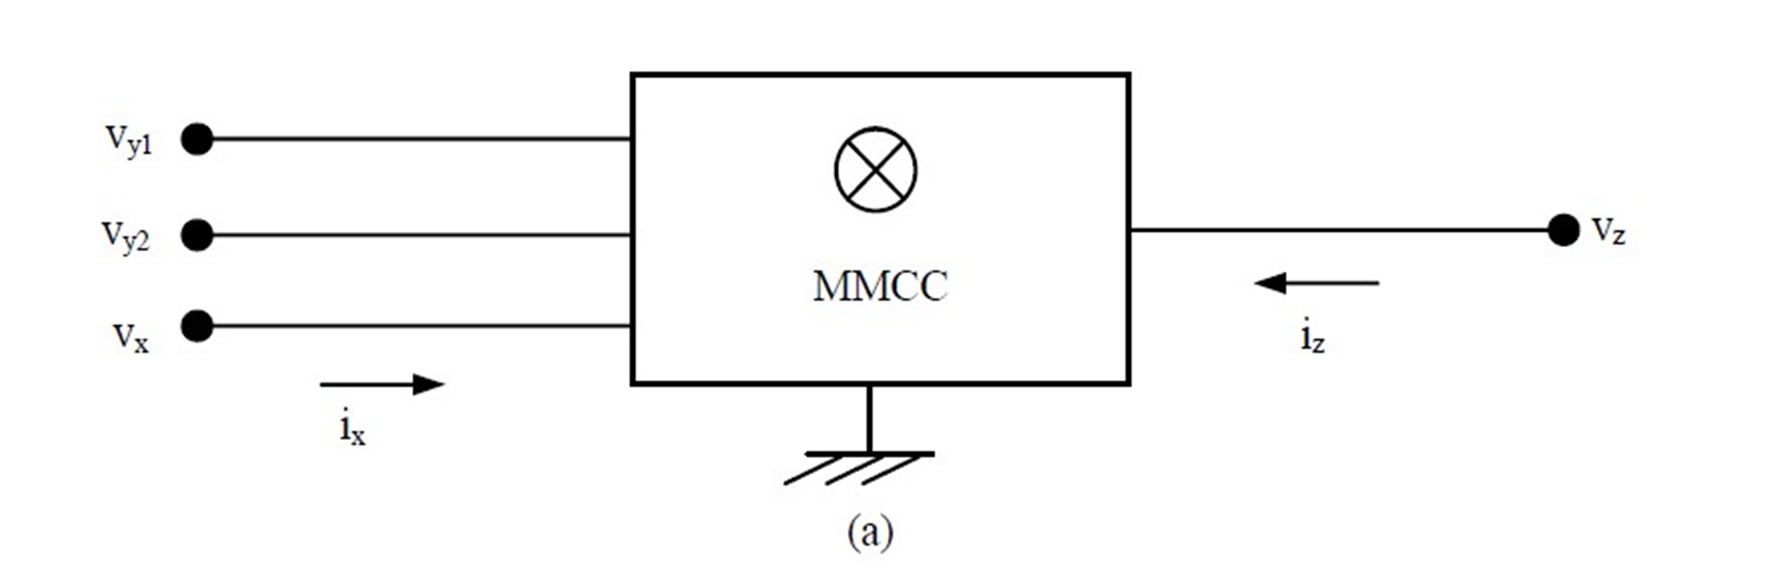 New Integrators And Differentiators Using A Mmcc Proposed Transimpedance Amplifier Schematic